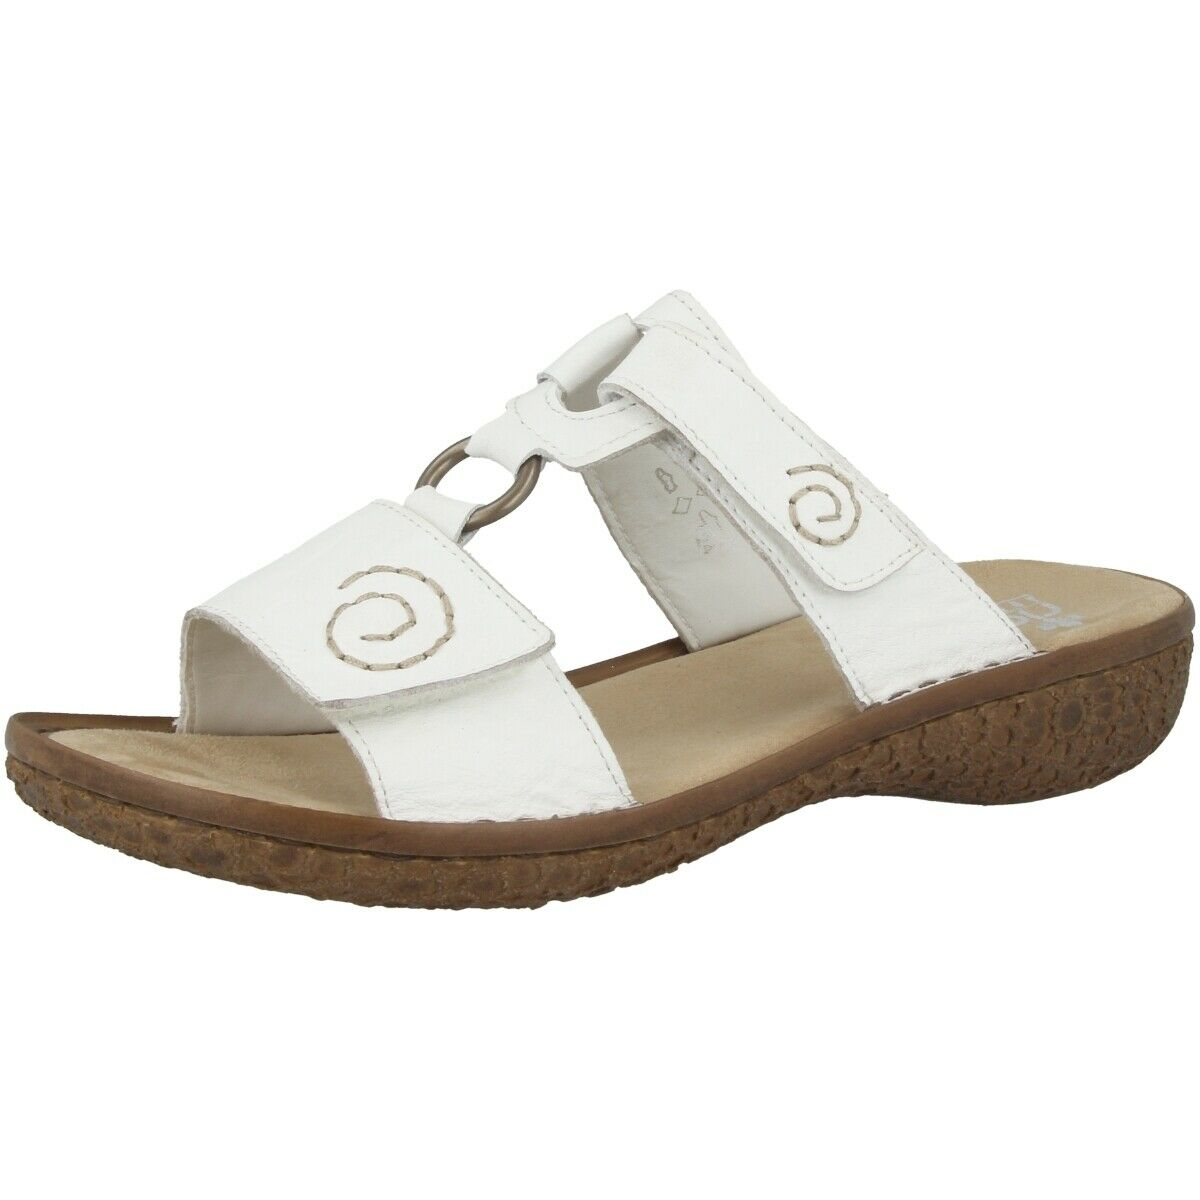 Rieker massa shoes women casual loafers sandals white v69n2-80